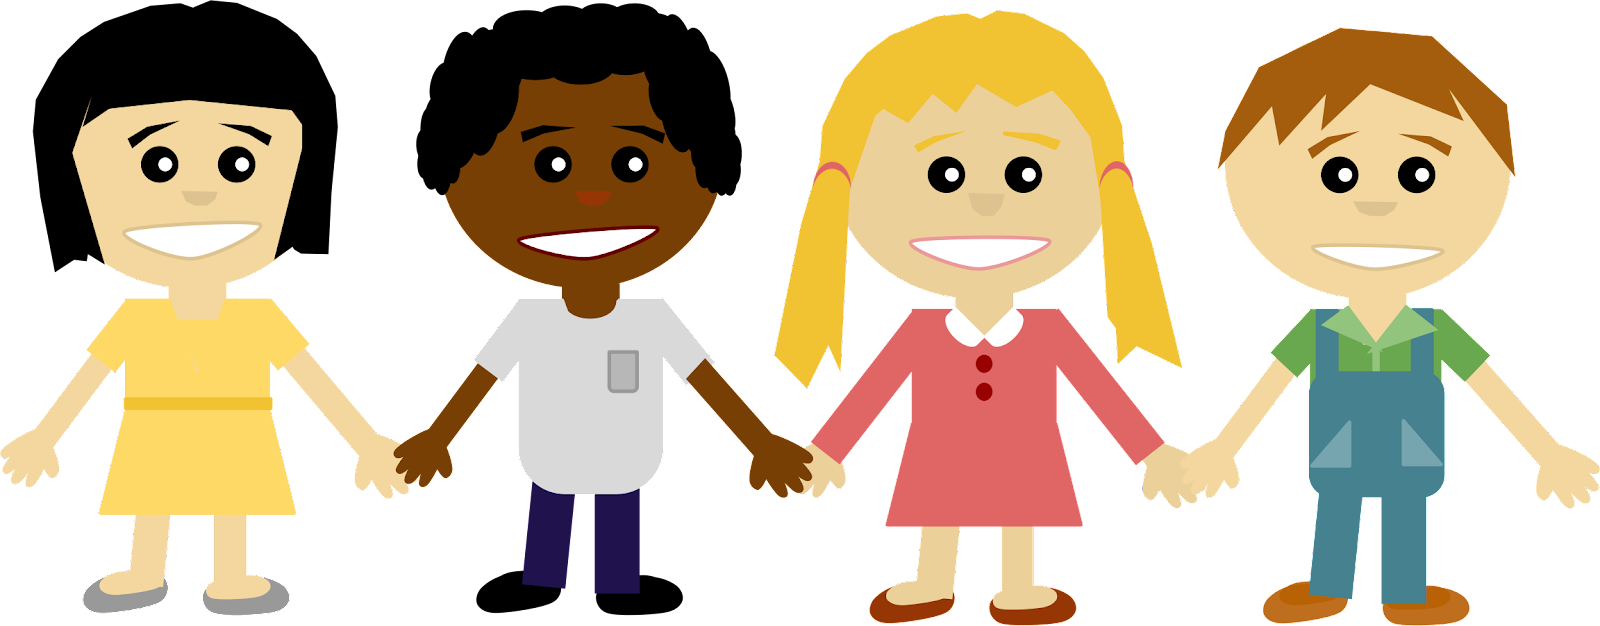 Children-holding-hands-2400px.png